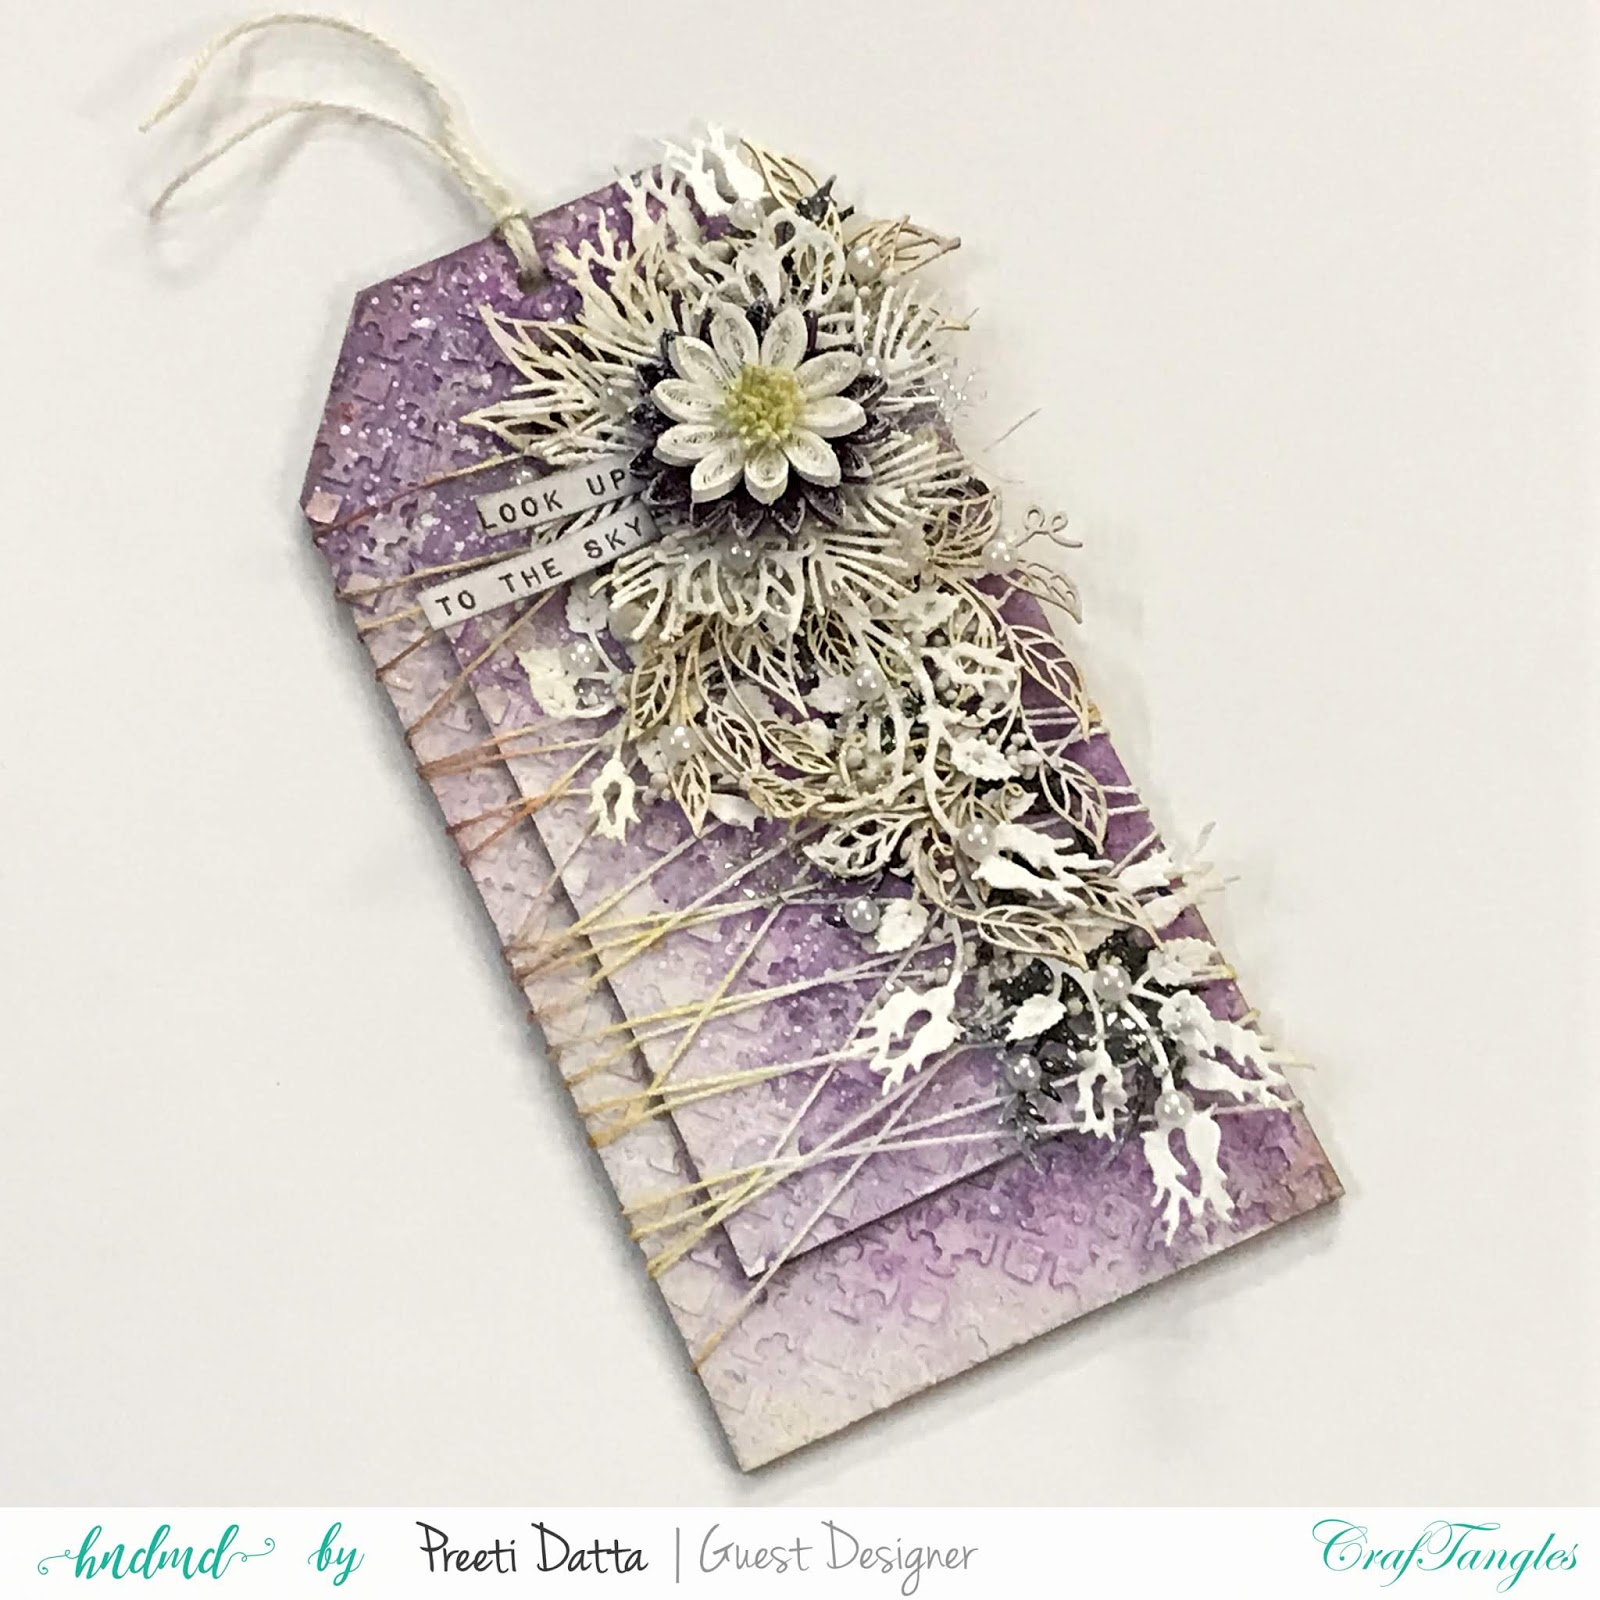 Floral Mixed Media Tag (with Pictorial) by Preeti Datta 3